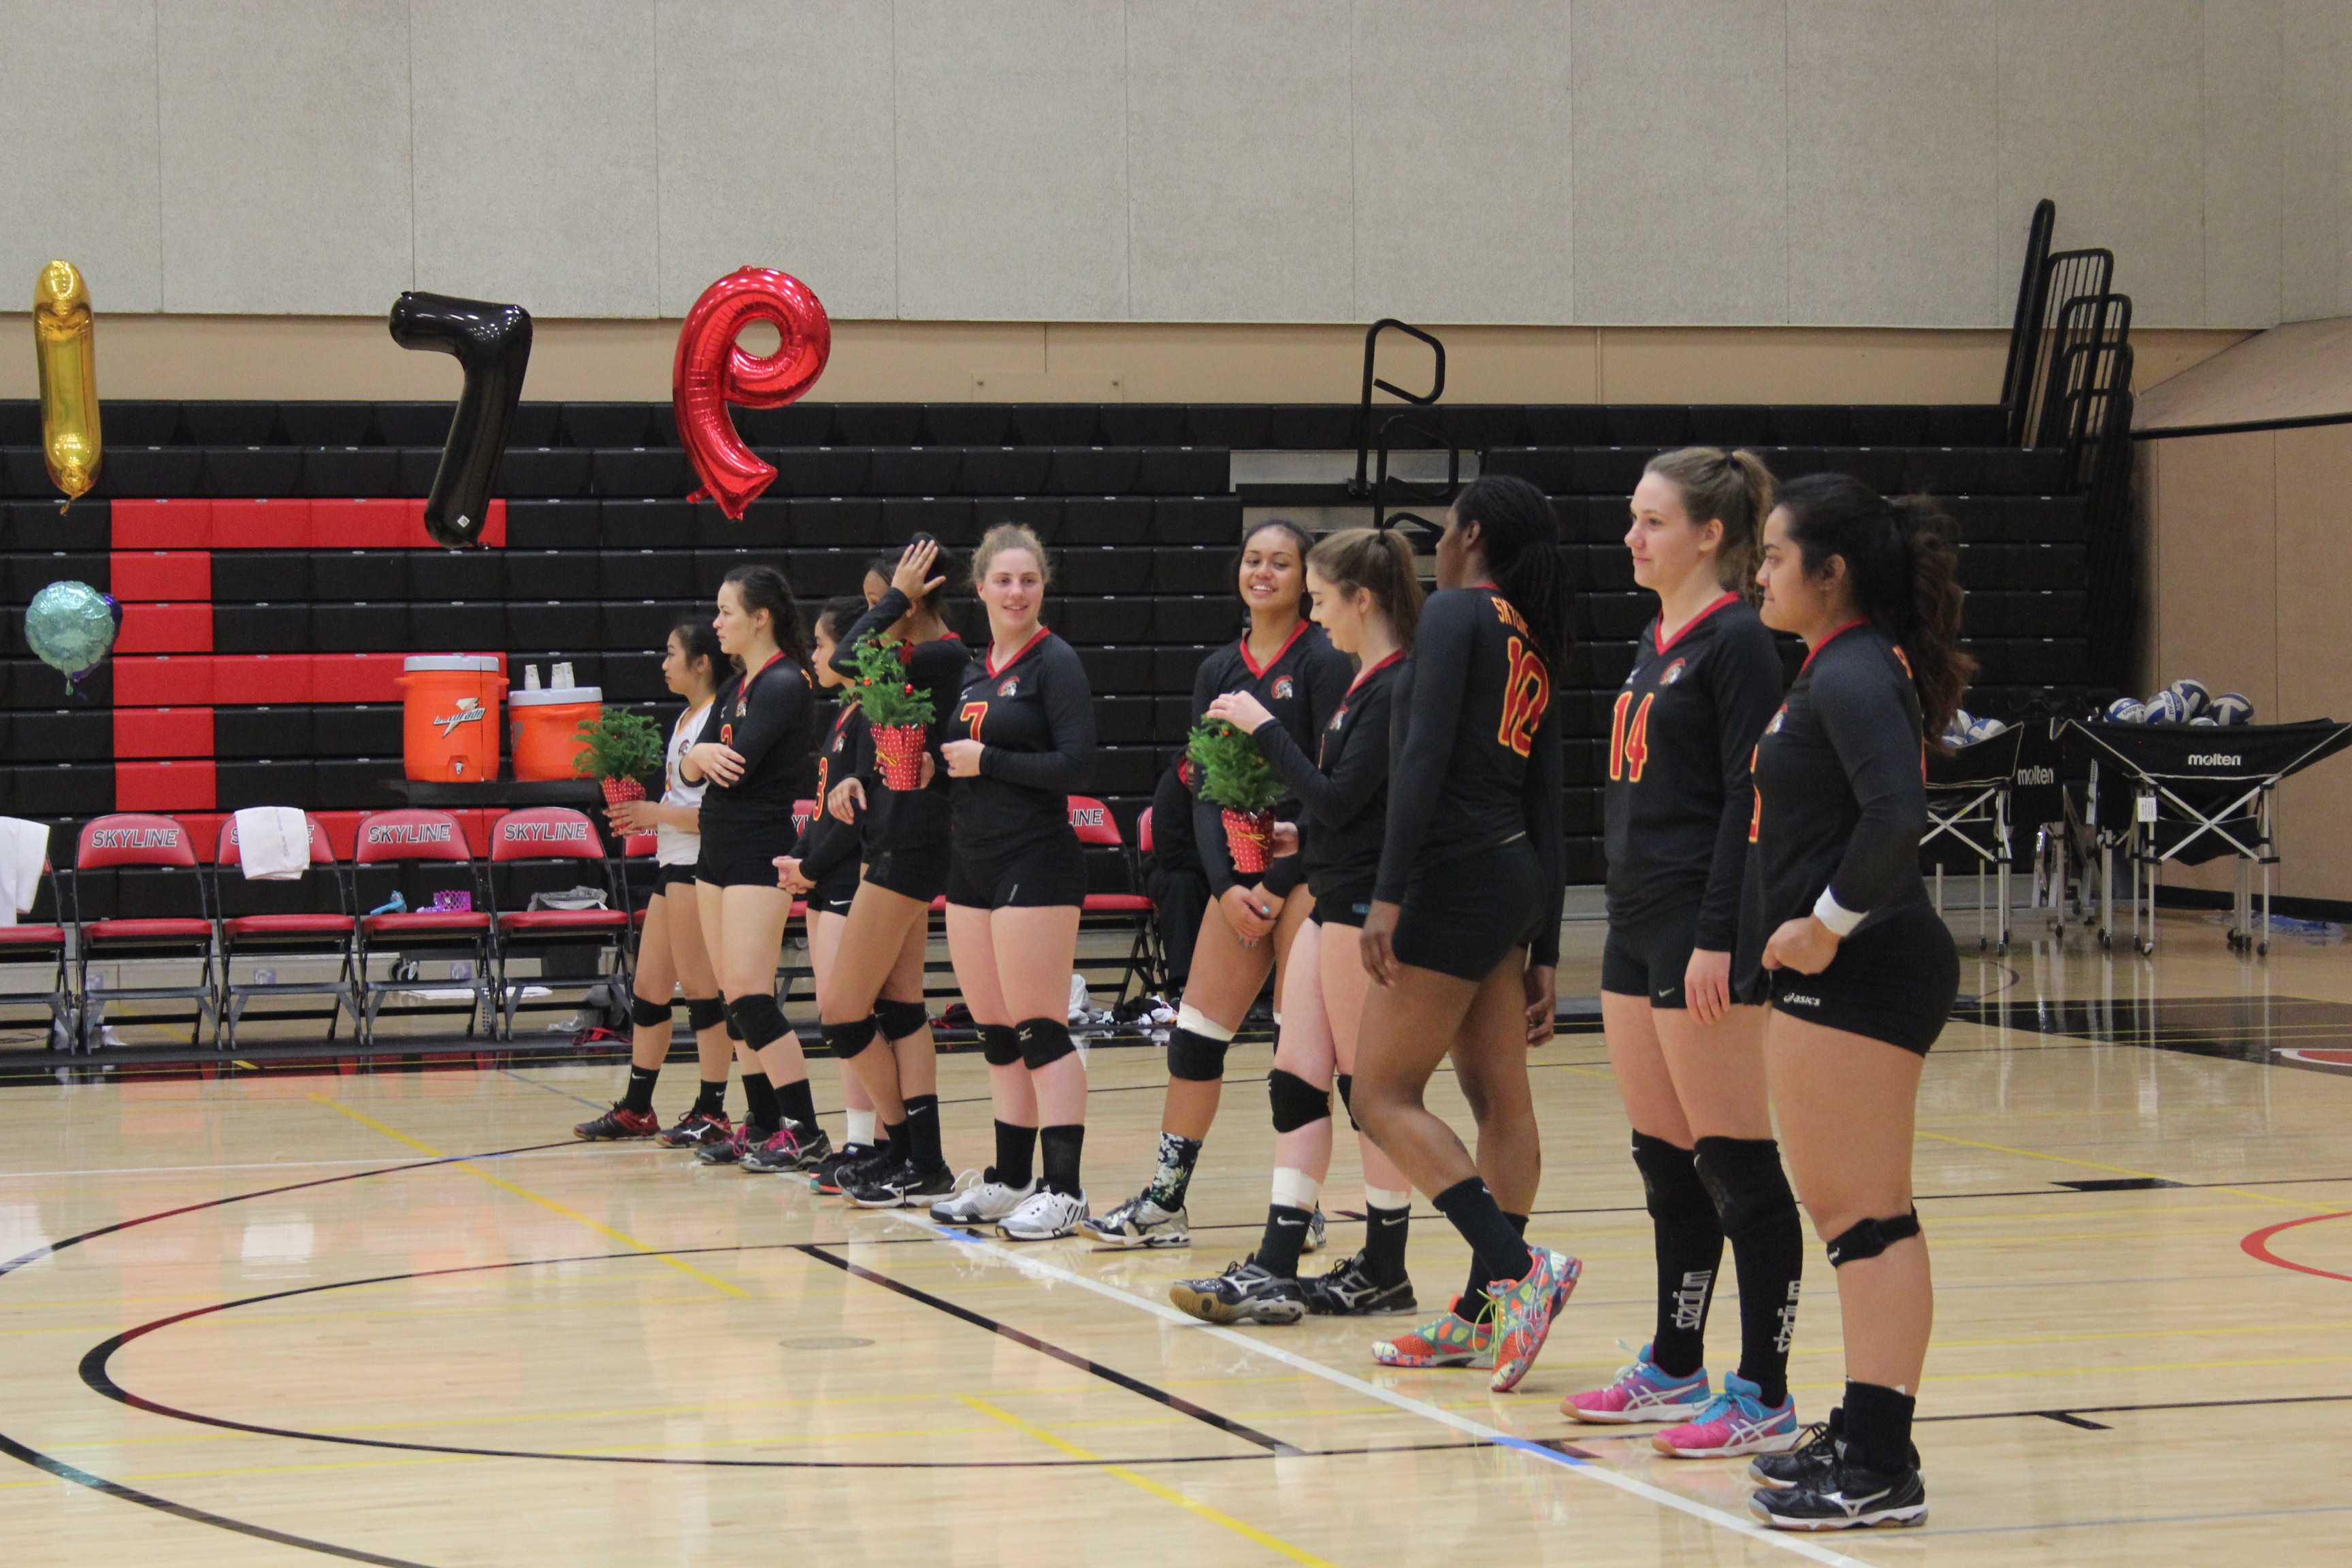 Volleyball program establishes principles for life success